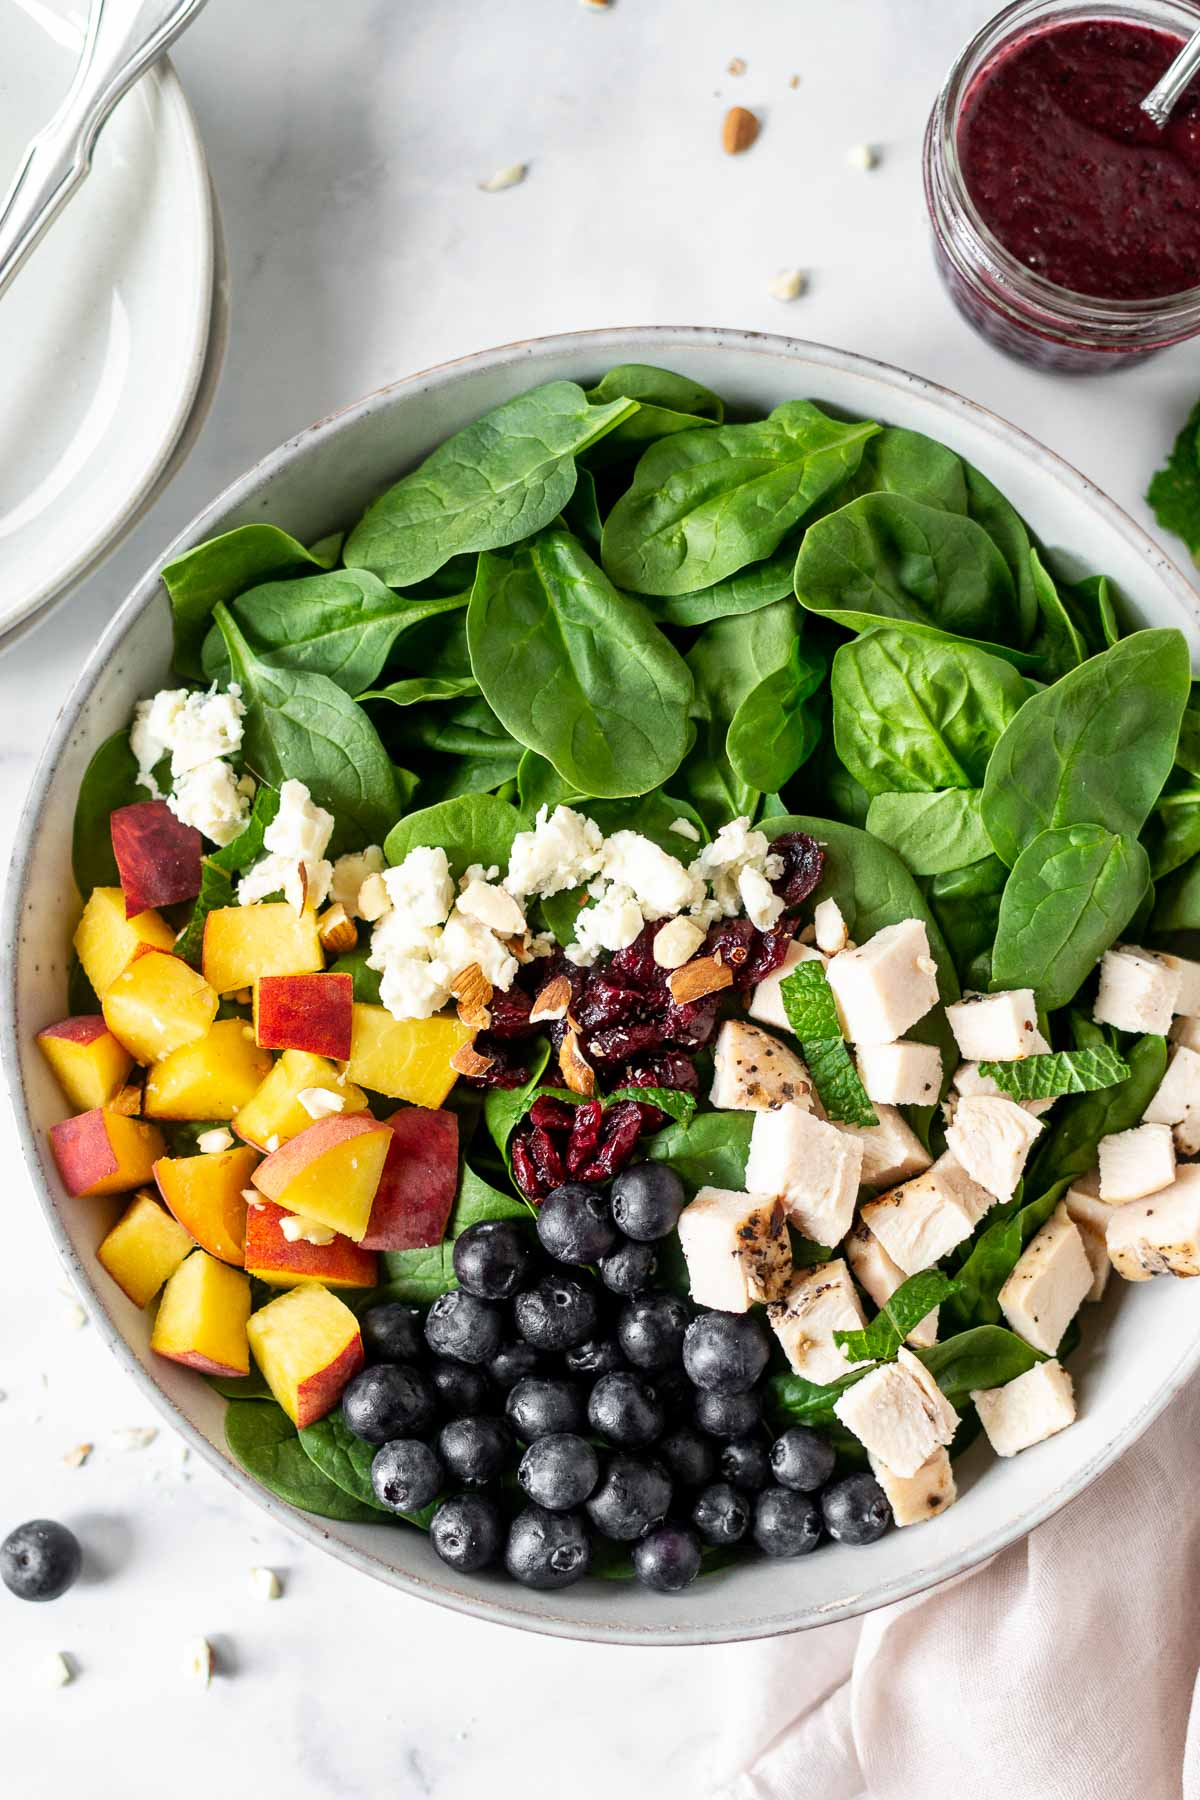 Peach and blueberry salad in a bowl with dressing and salad plates.